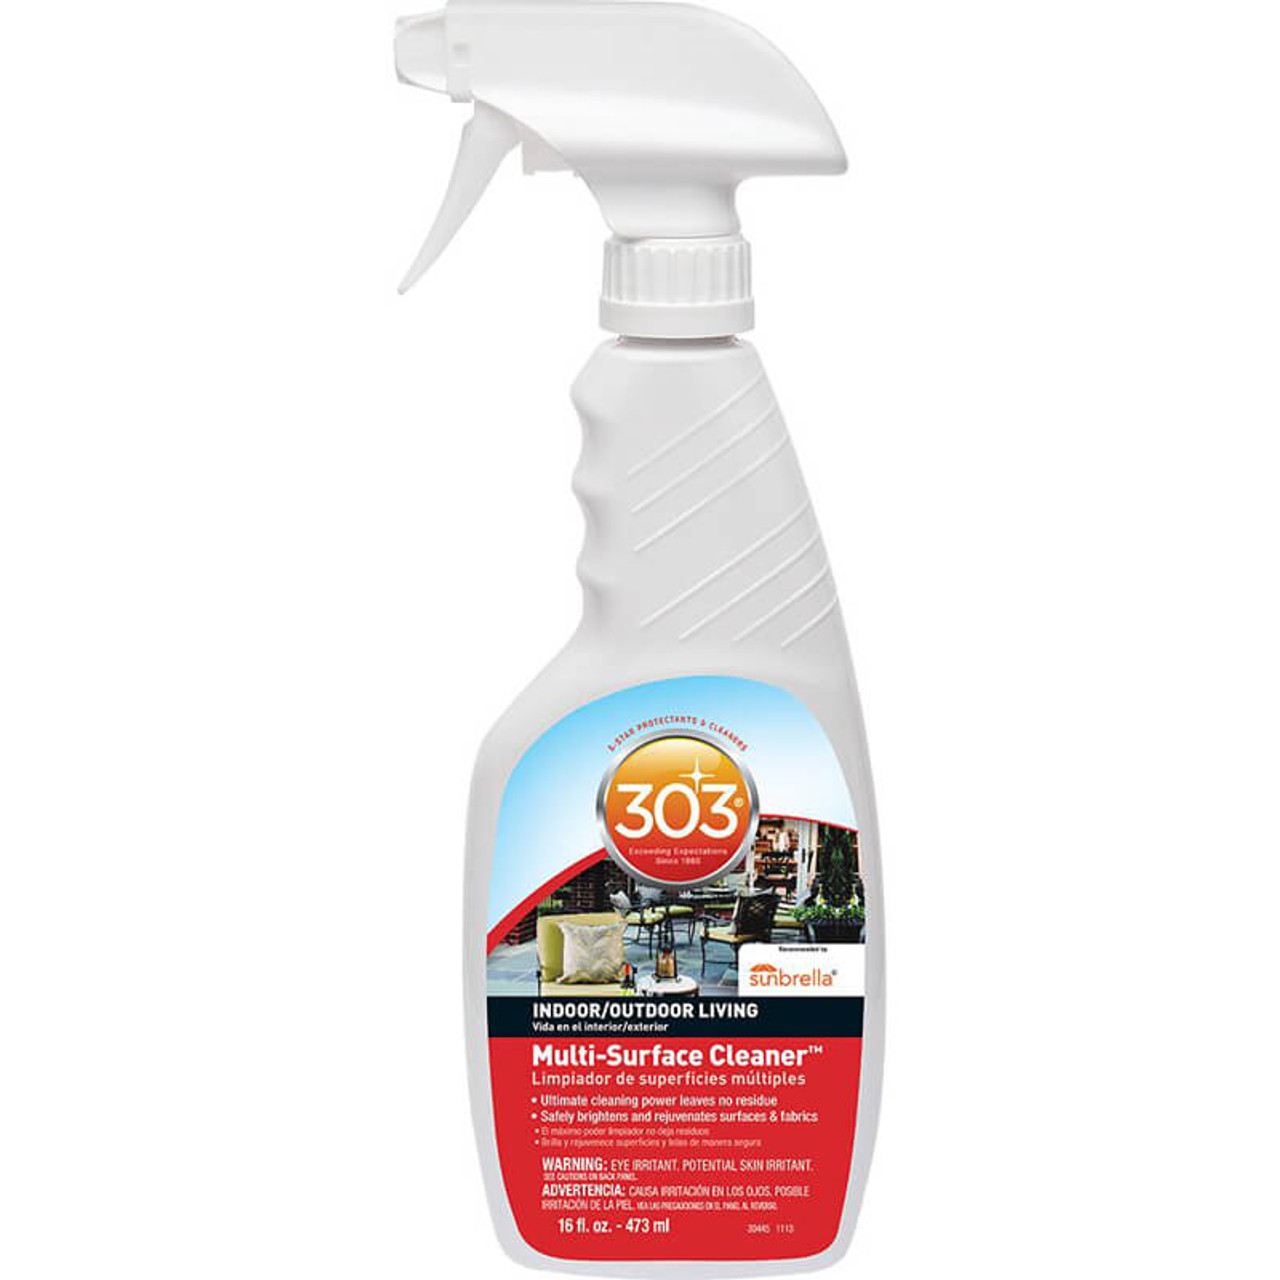 303 Multi-Surface Cleaner 946ml